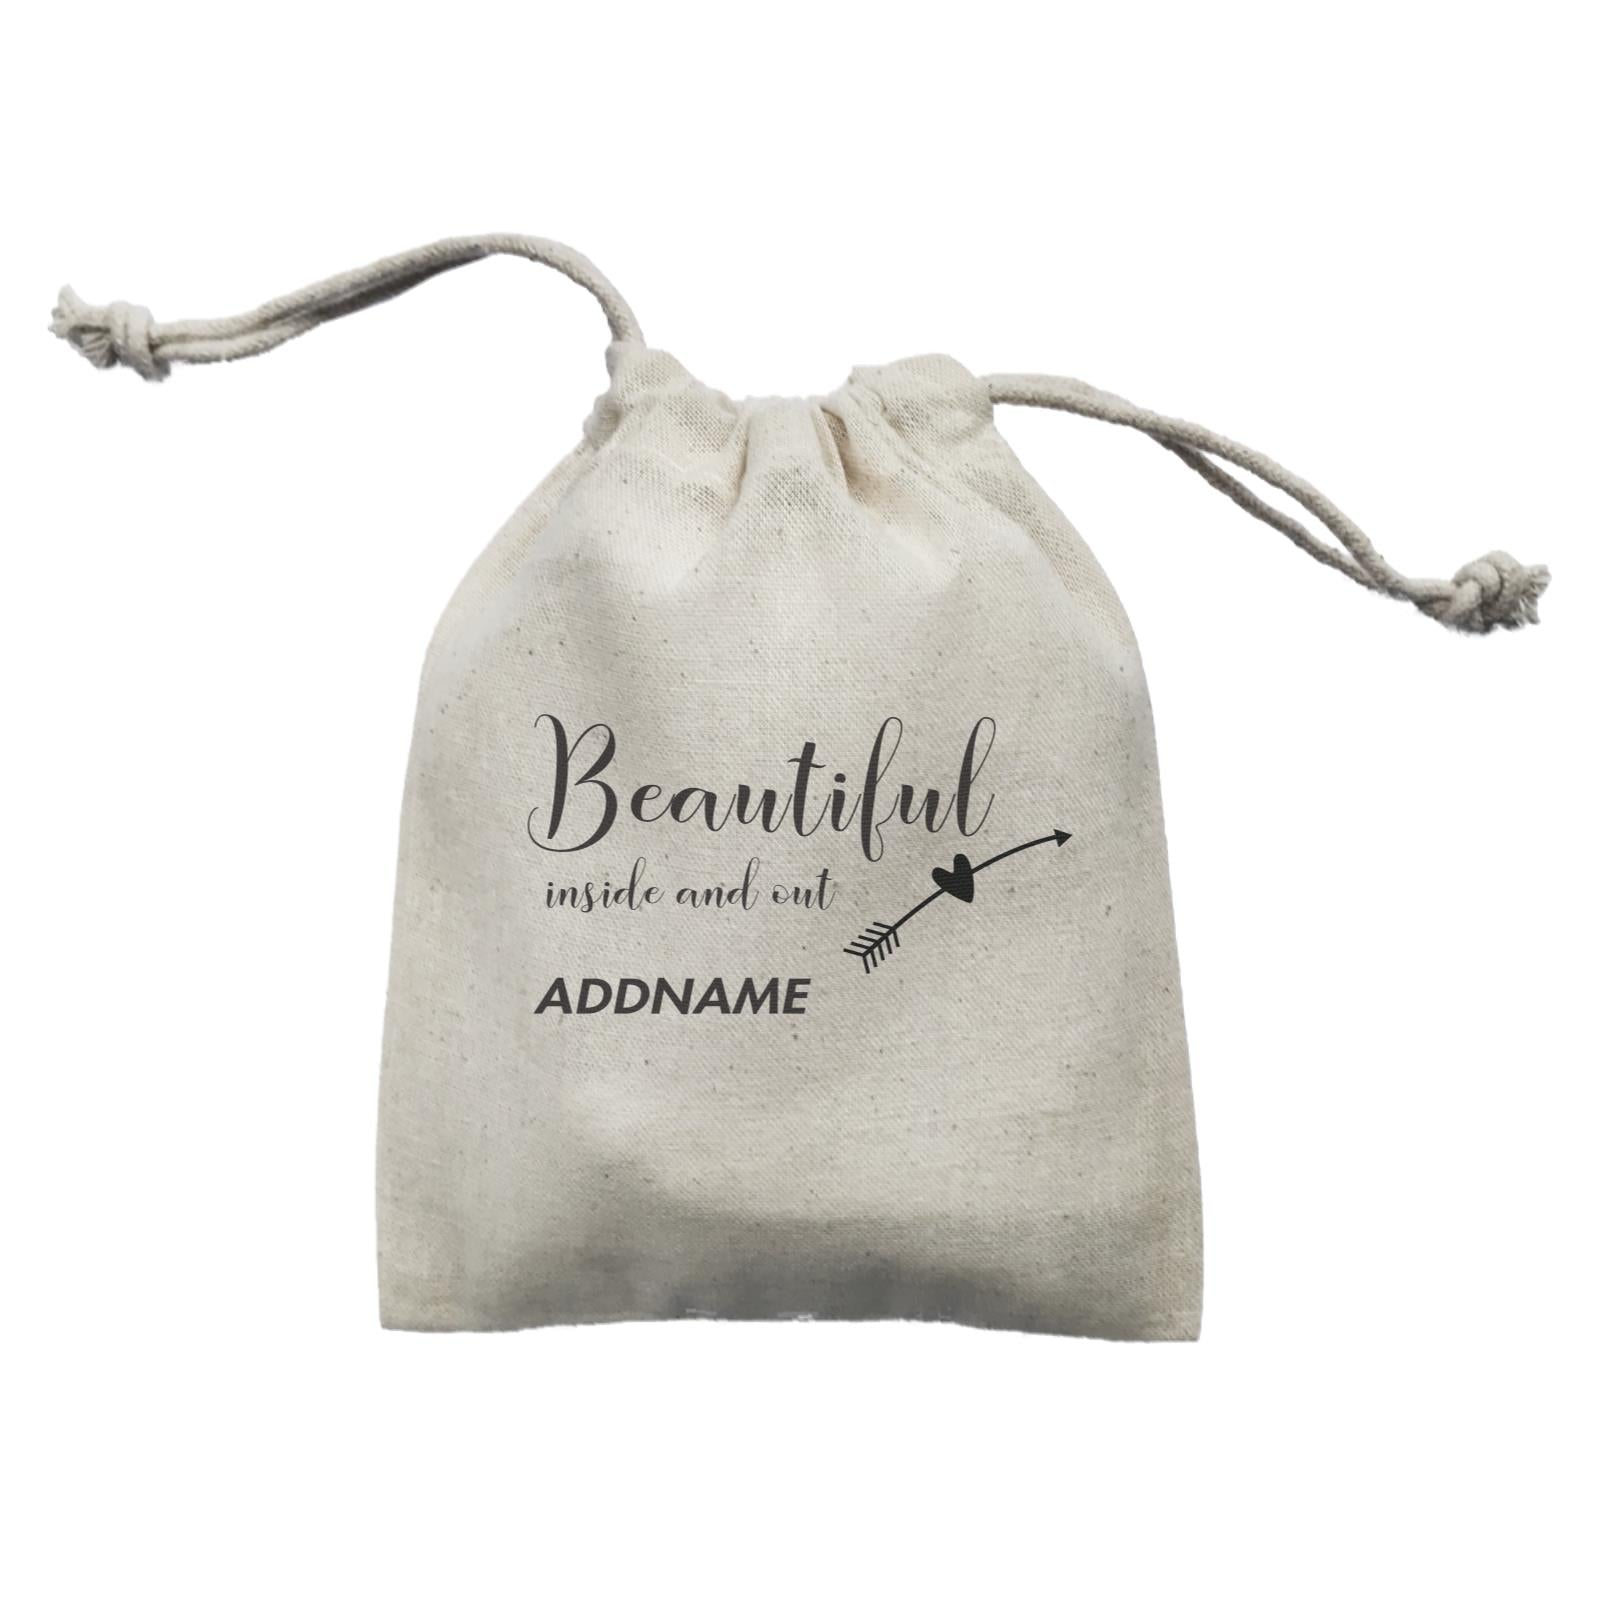 Make Up Quotes Beautiful Inside And Out Addname Mini Accessories Mini Pouch